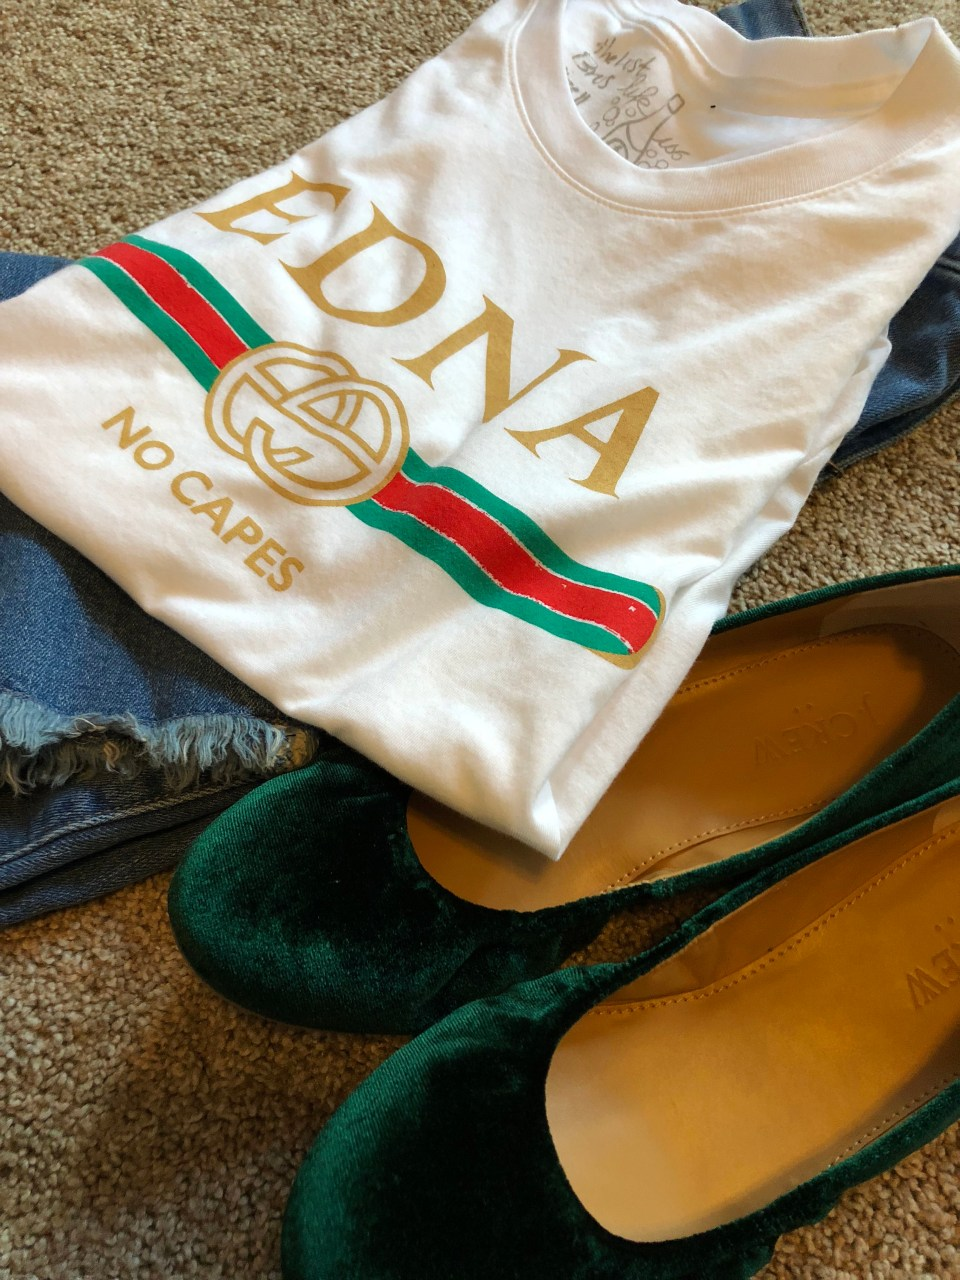 Edna - No Capes tee & Green Velvet Flats 7